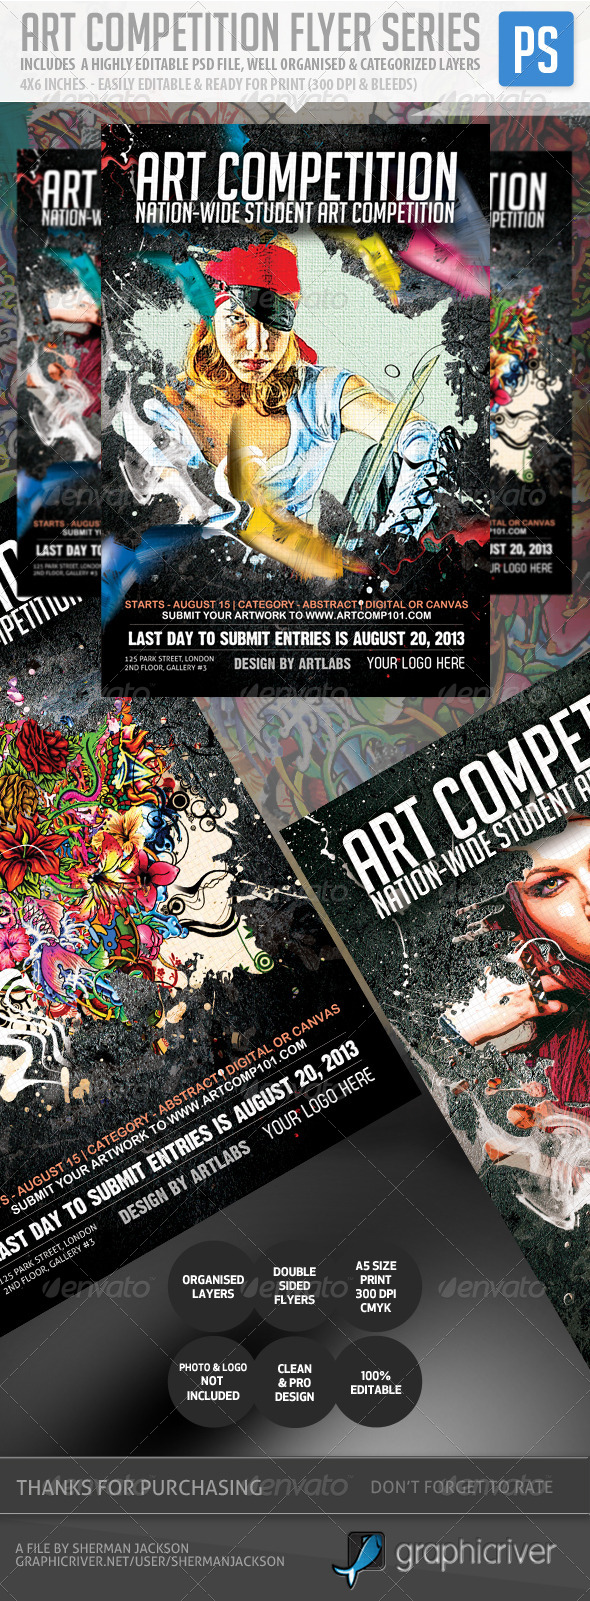 GraphicRiver Art Competition Flyer Series 5324023